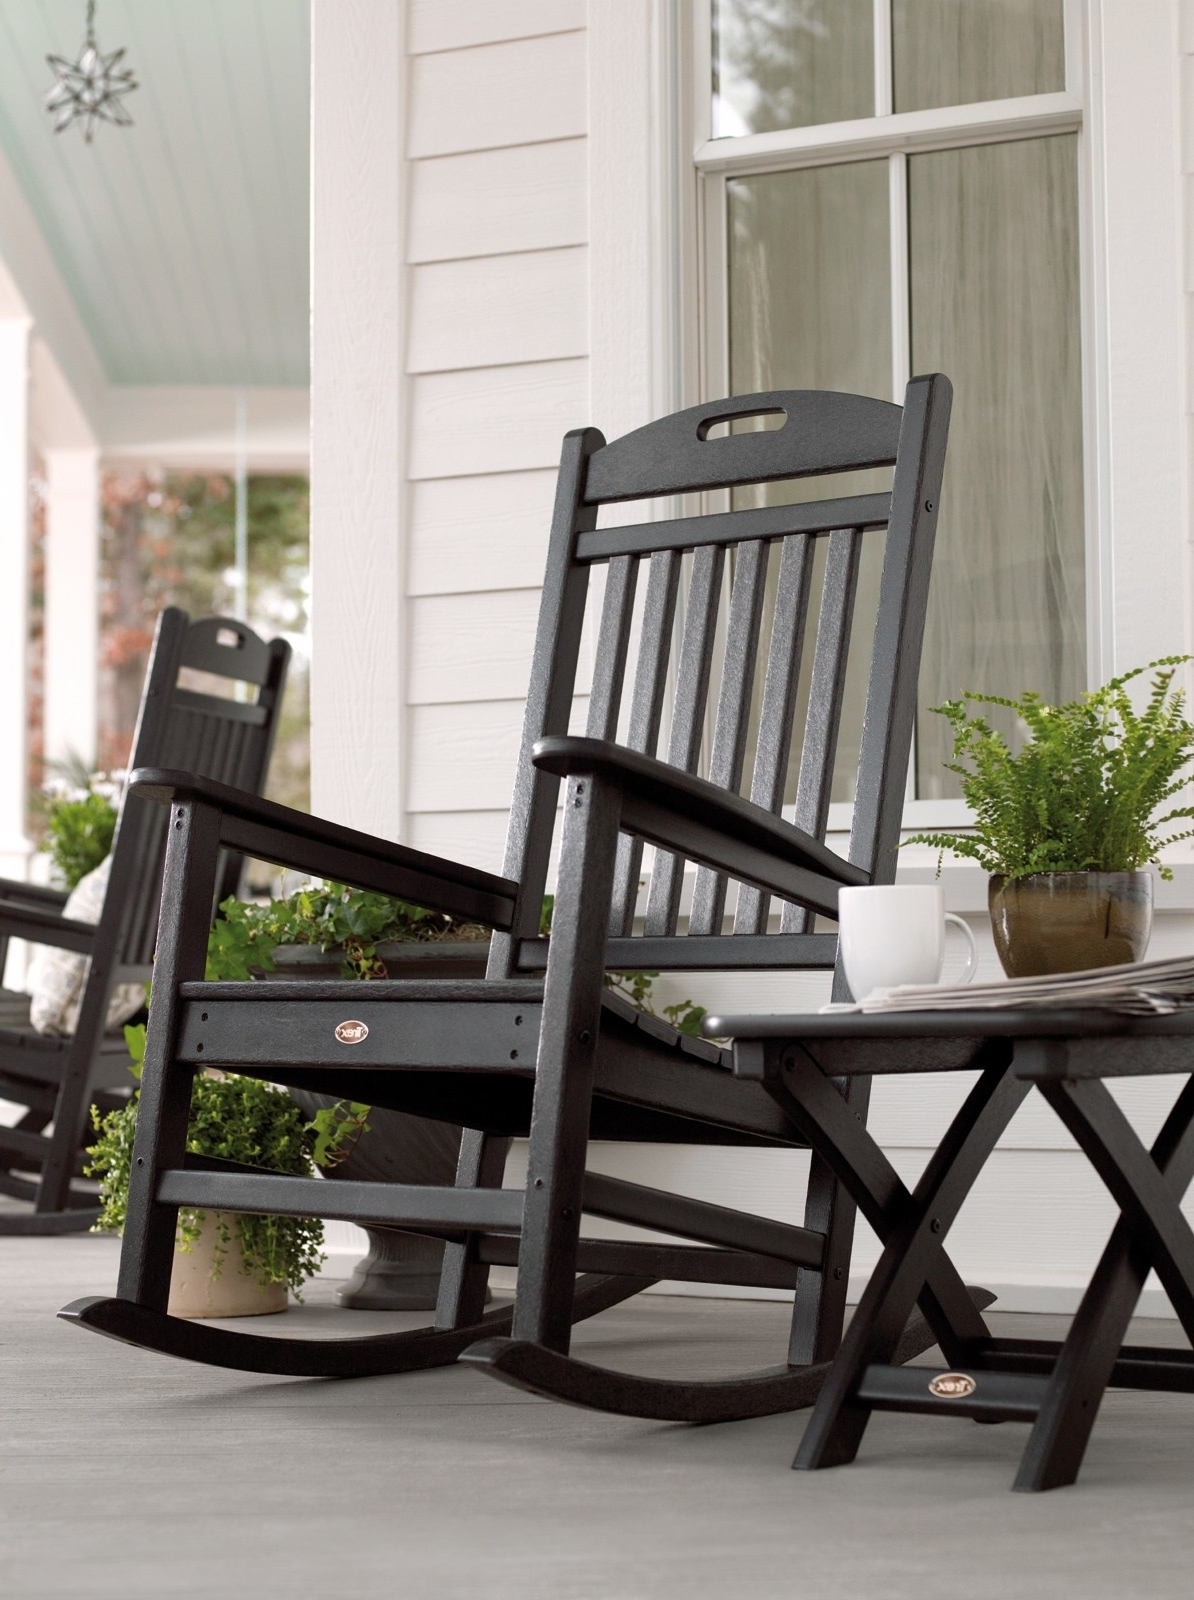 Yacht Club Rocking Chair For Recent Rocking Chair Outdoor Wooden (Gallery 6 of 15)